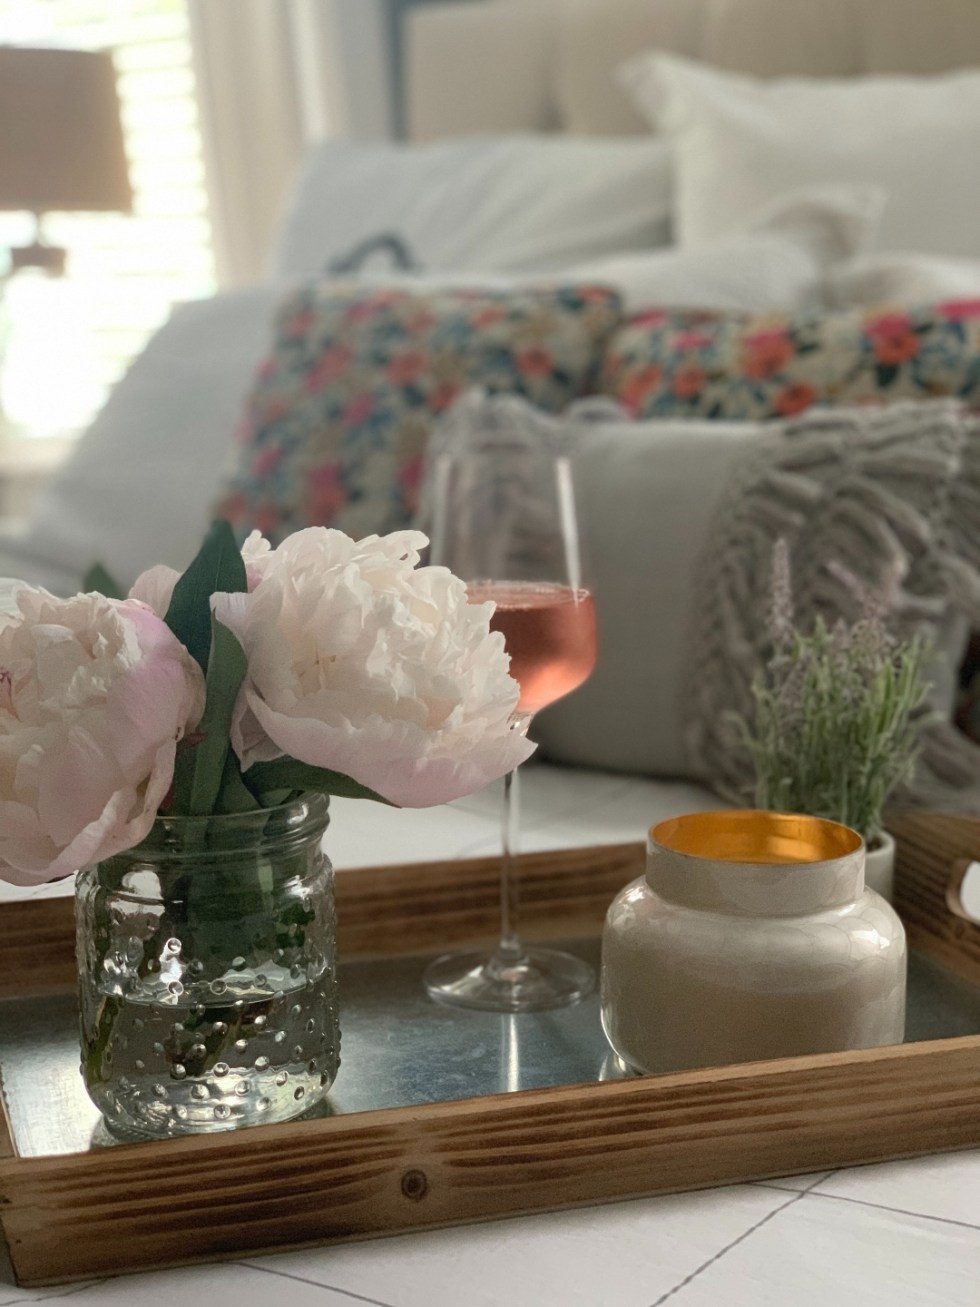 How to Make your Home Cozy: 10 Easy Ways - I'm Fixin' To - @imfixintoblog |How to Make Your Home Cozy by popular NC life and style blog, I'm Fixin' To: image of a serving tray set with a vase of flowers, candle, and glass of wine.